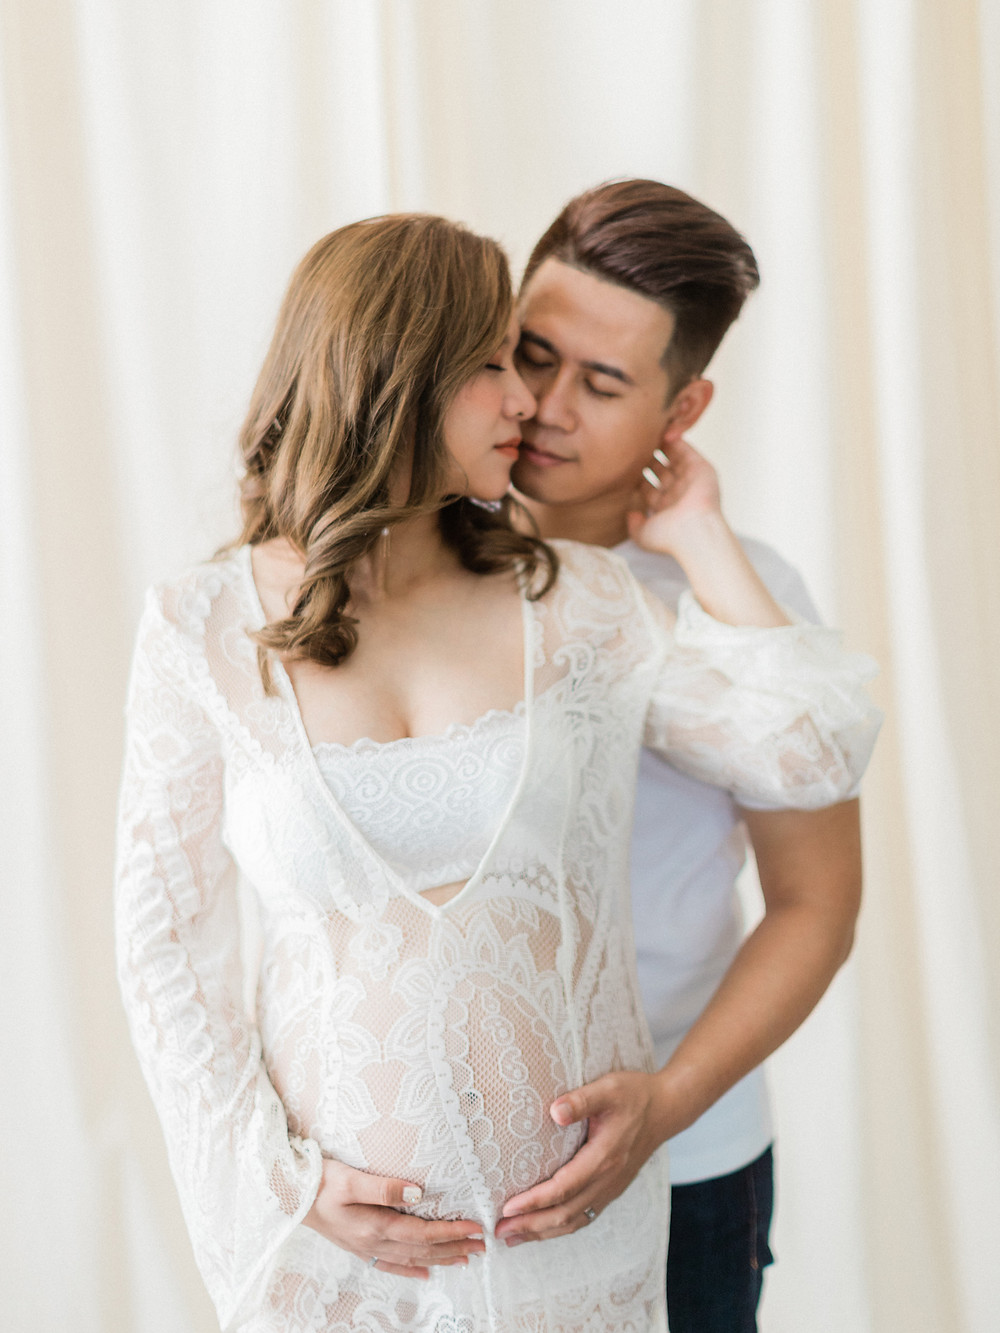 Ting & Rody Maternity Portrait Arther Chen Photography